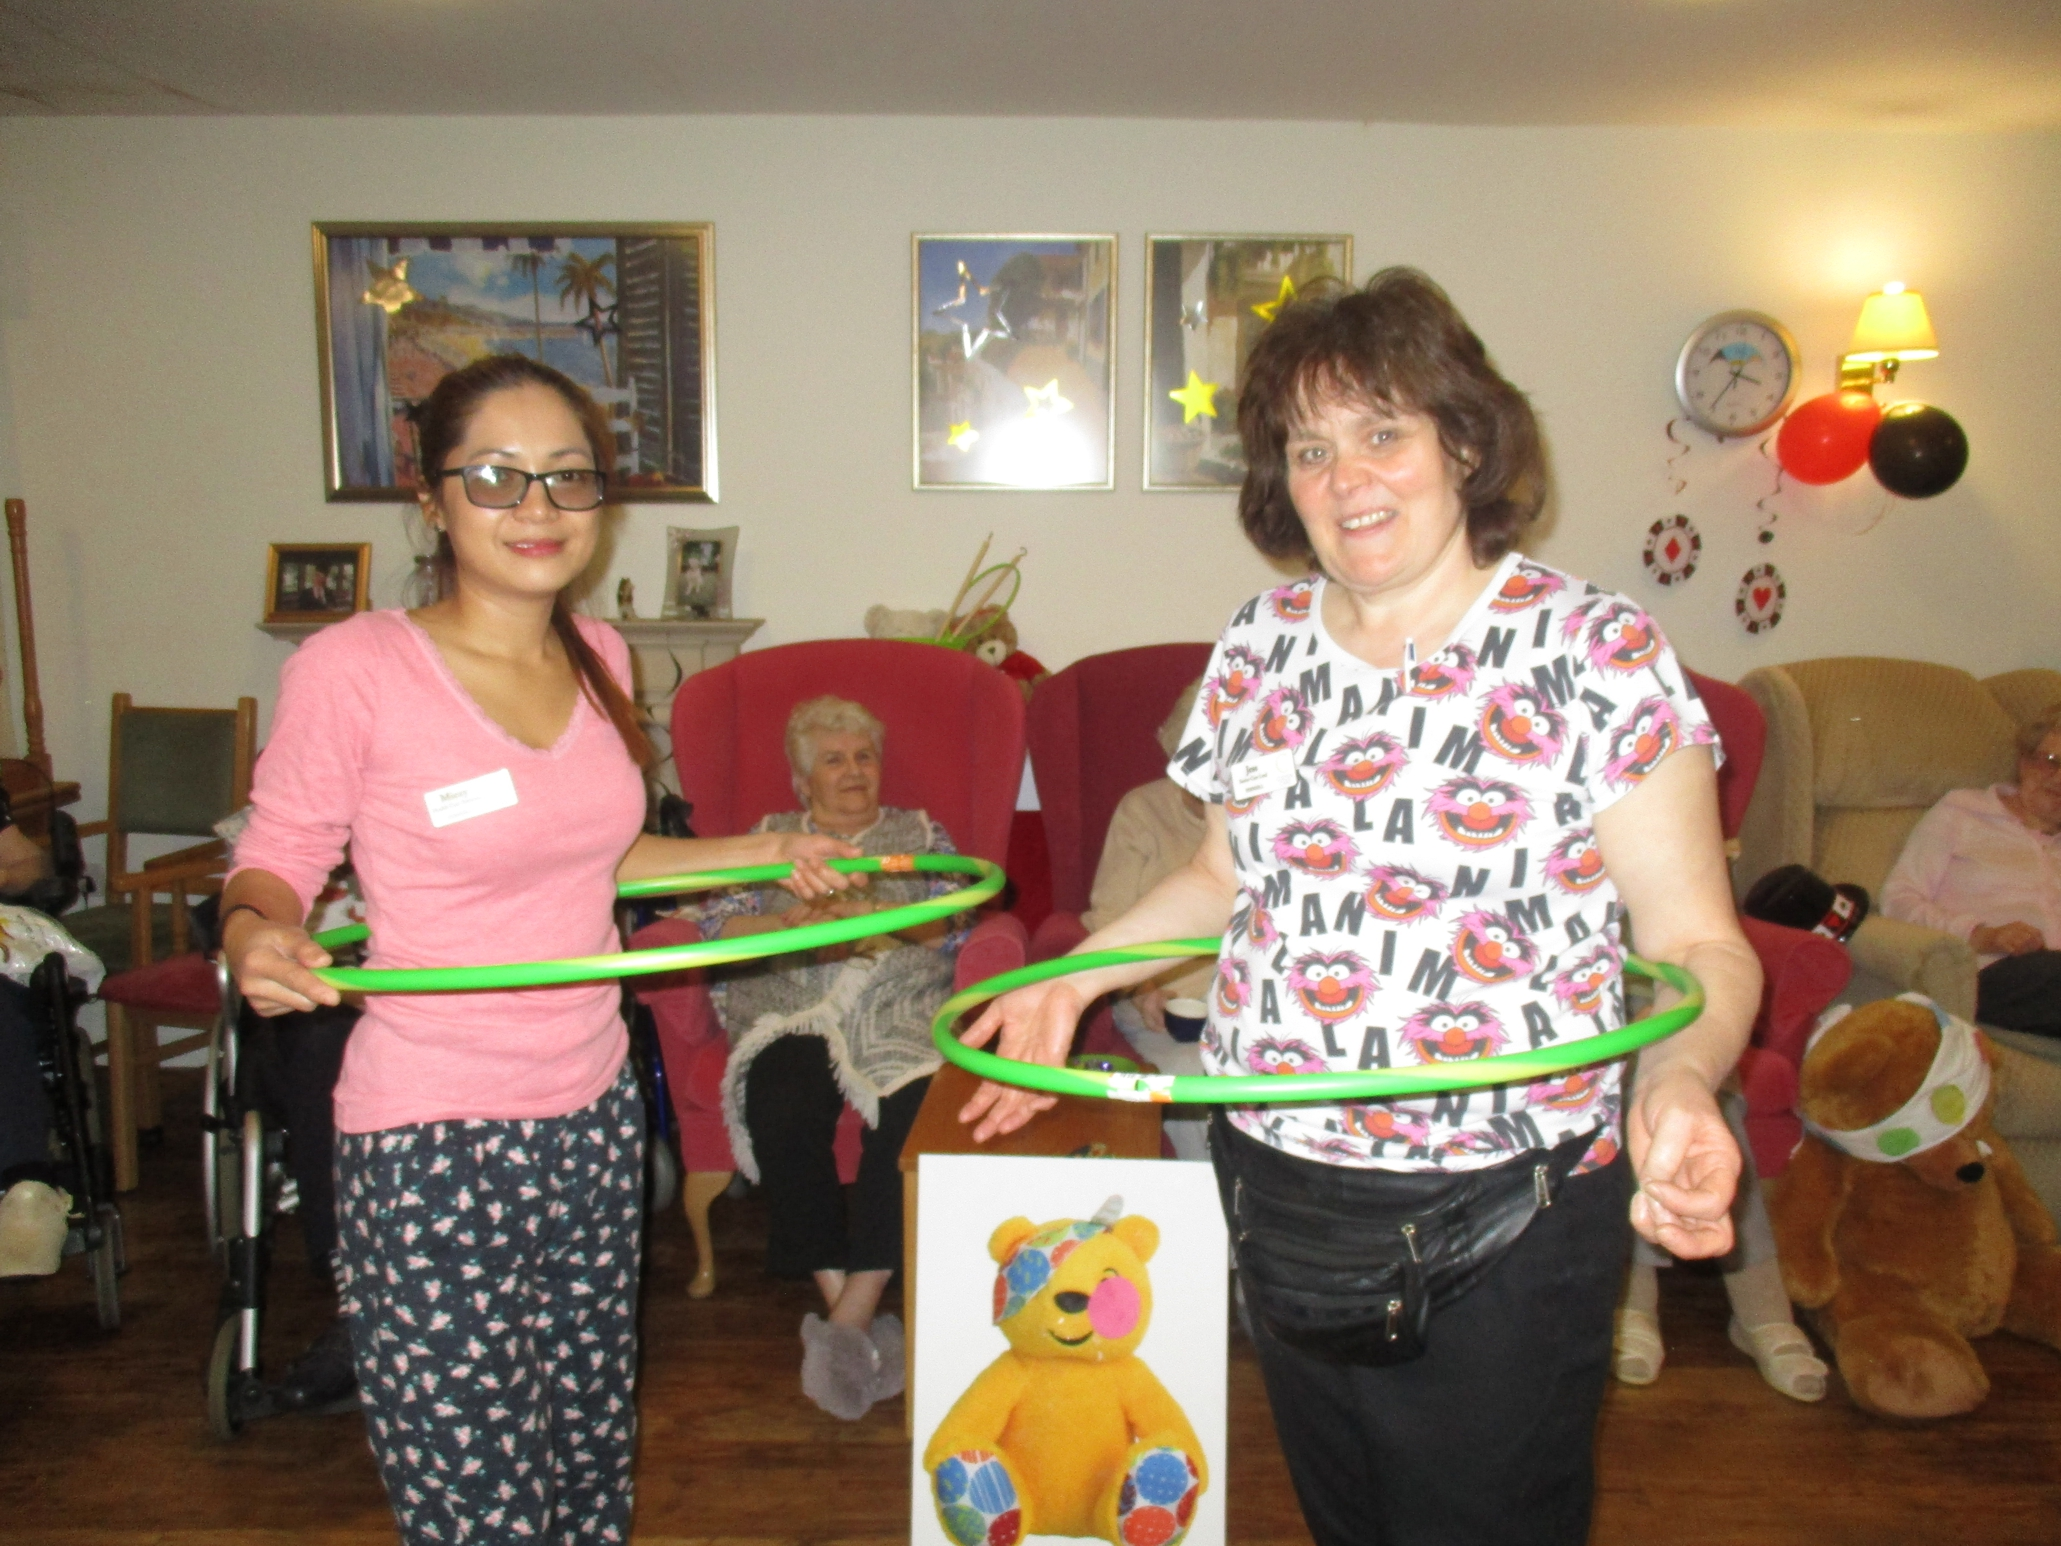 Pudsey plays indoor Games and has a Party!